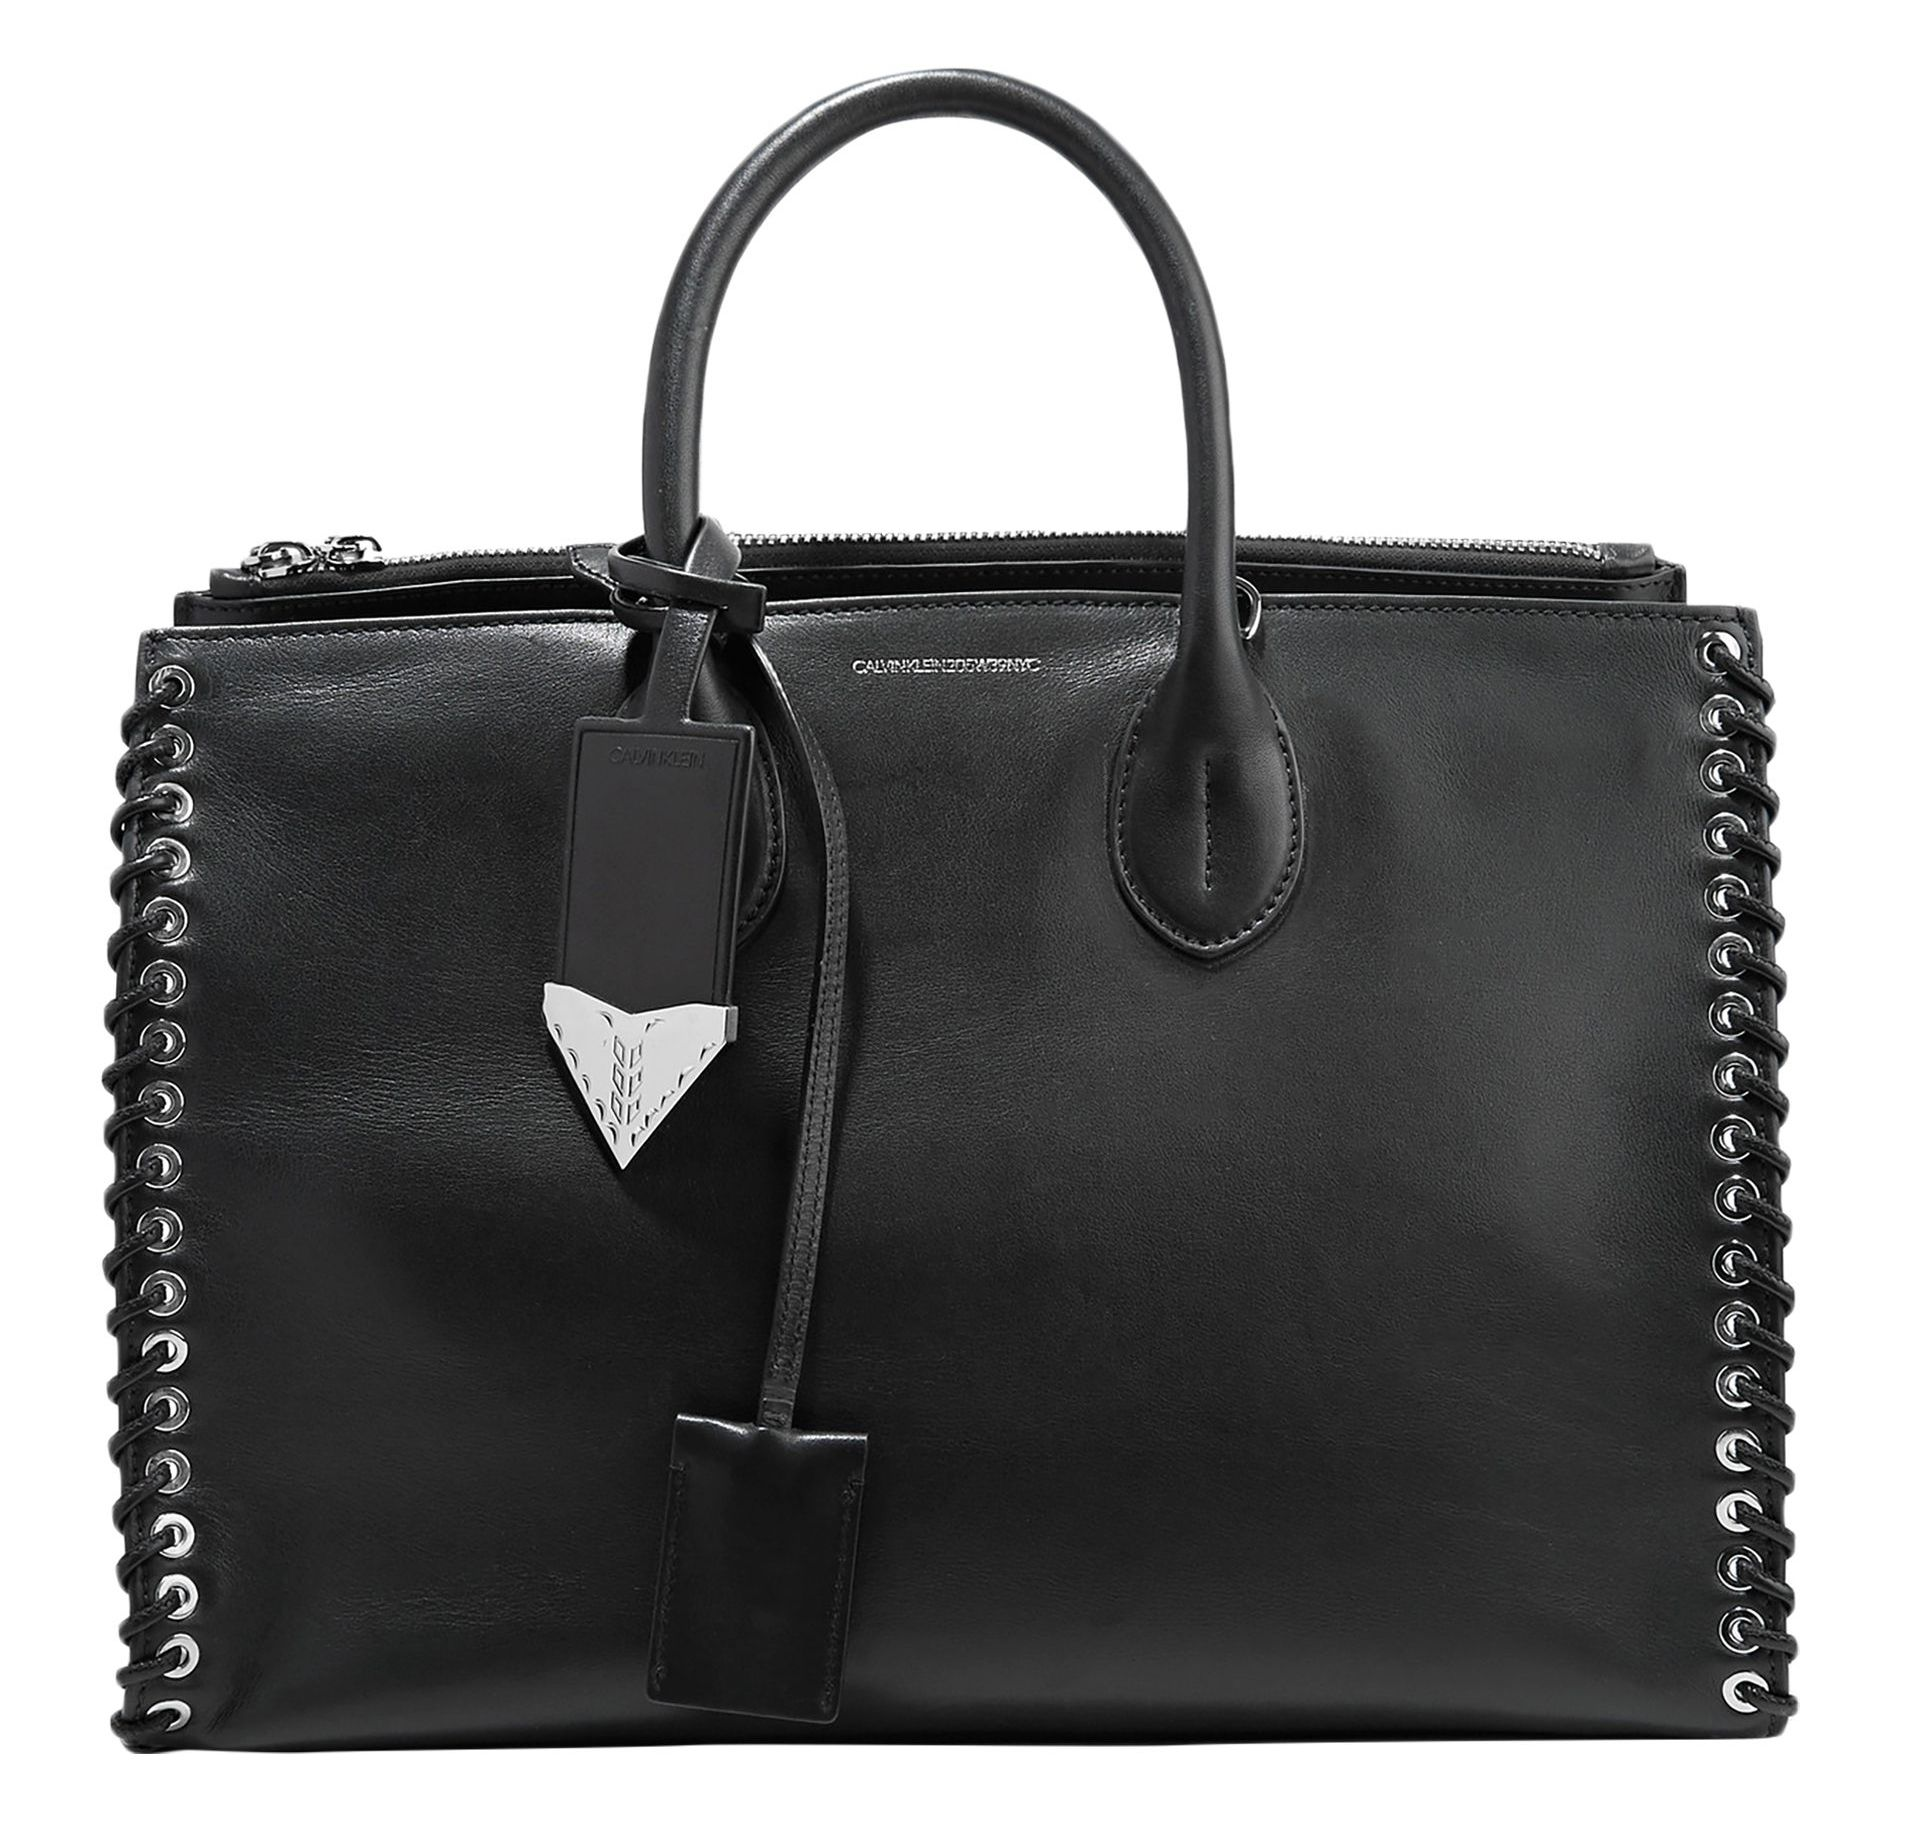 CALVIN-KLEIN-205W39NYC-whipstitched-black-leather-tote-the-outnet-sale